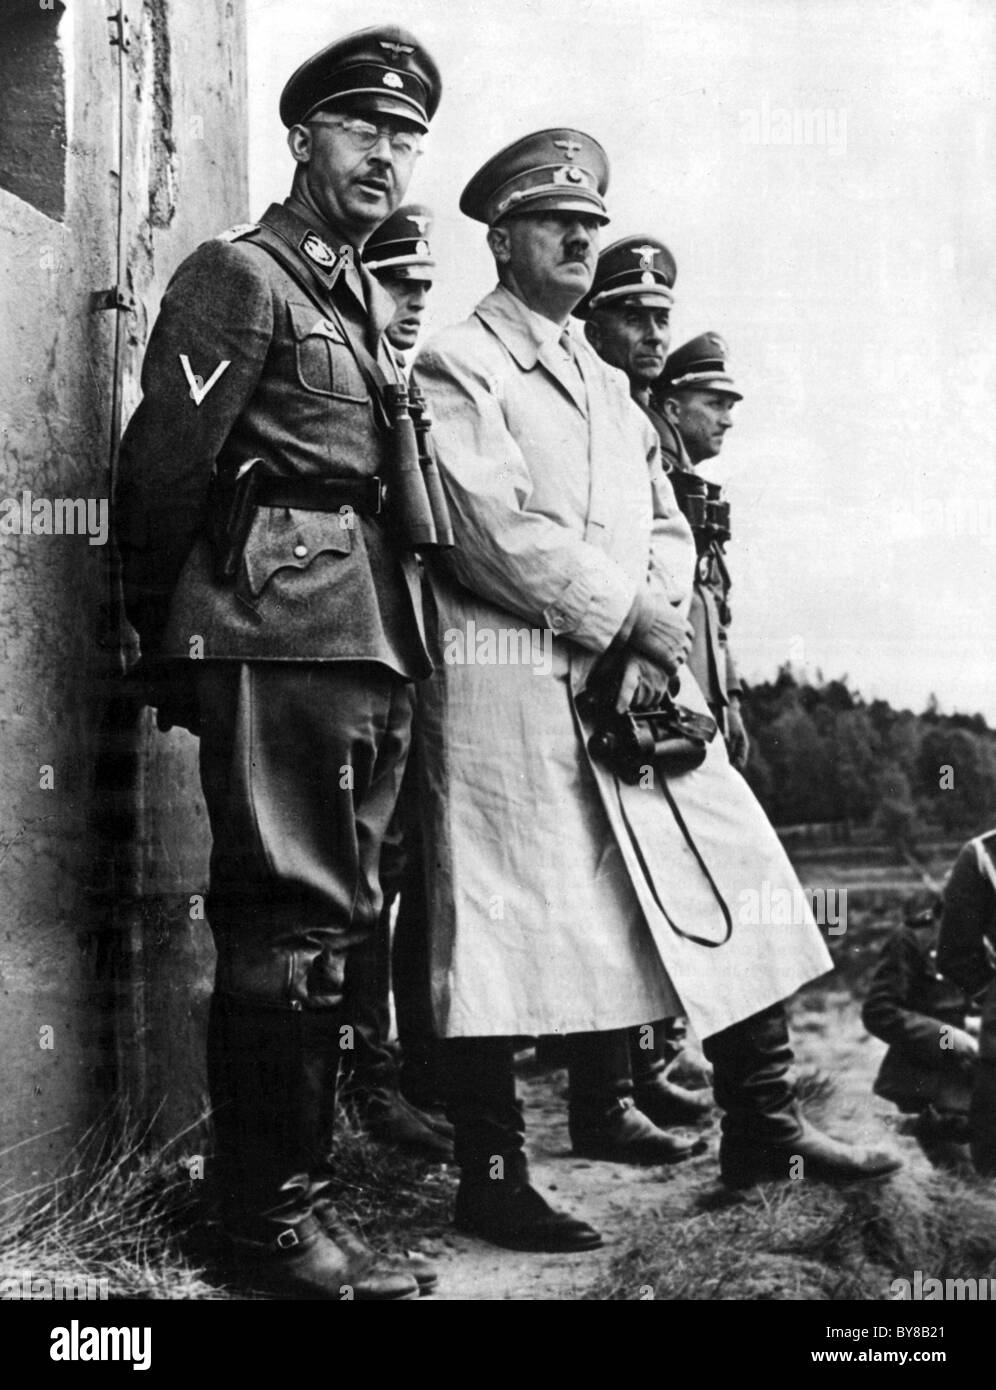 world war ii adolf hitlers quest for the aryan nation Adolf hitler was a german politician, demagogue, pan-german revolutionary,  and leader of the nazi party (nationalsozialistische deutsche arbeiterpartei  nsdap) who rose to power in germany as chancellor in 1933 and führer ( leader) in 1934 as dictator of nazi germany from 1933 to 1945, he initiated  world war ii in  ignoring his son's desire to attend a classical high school and  become an.